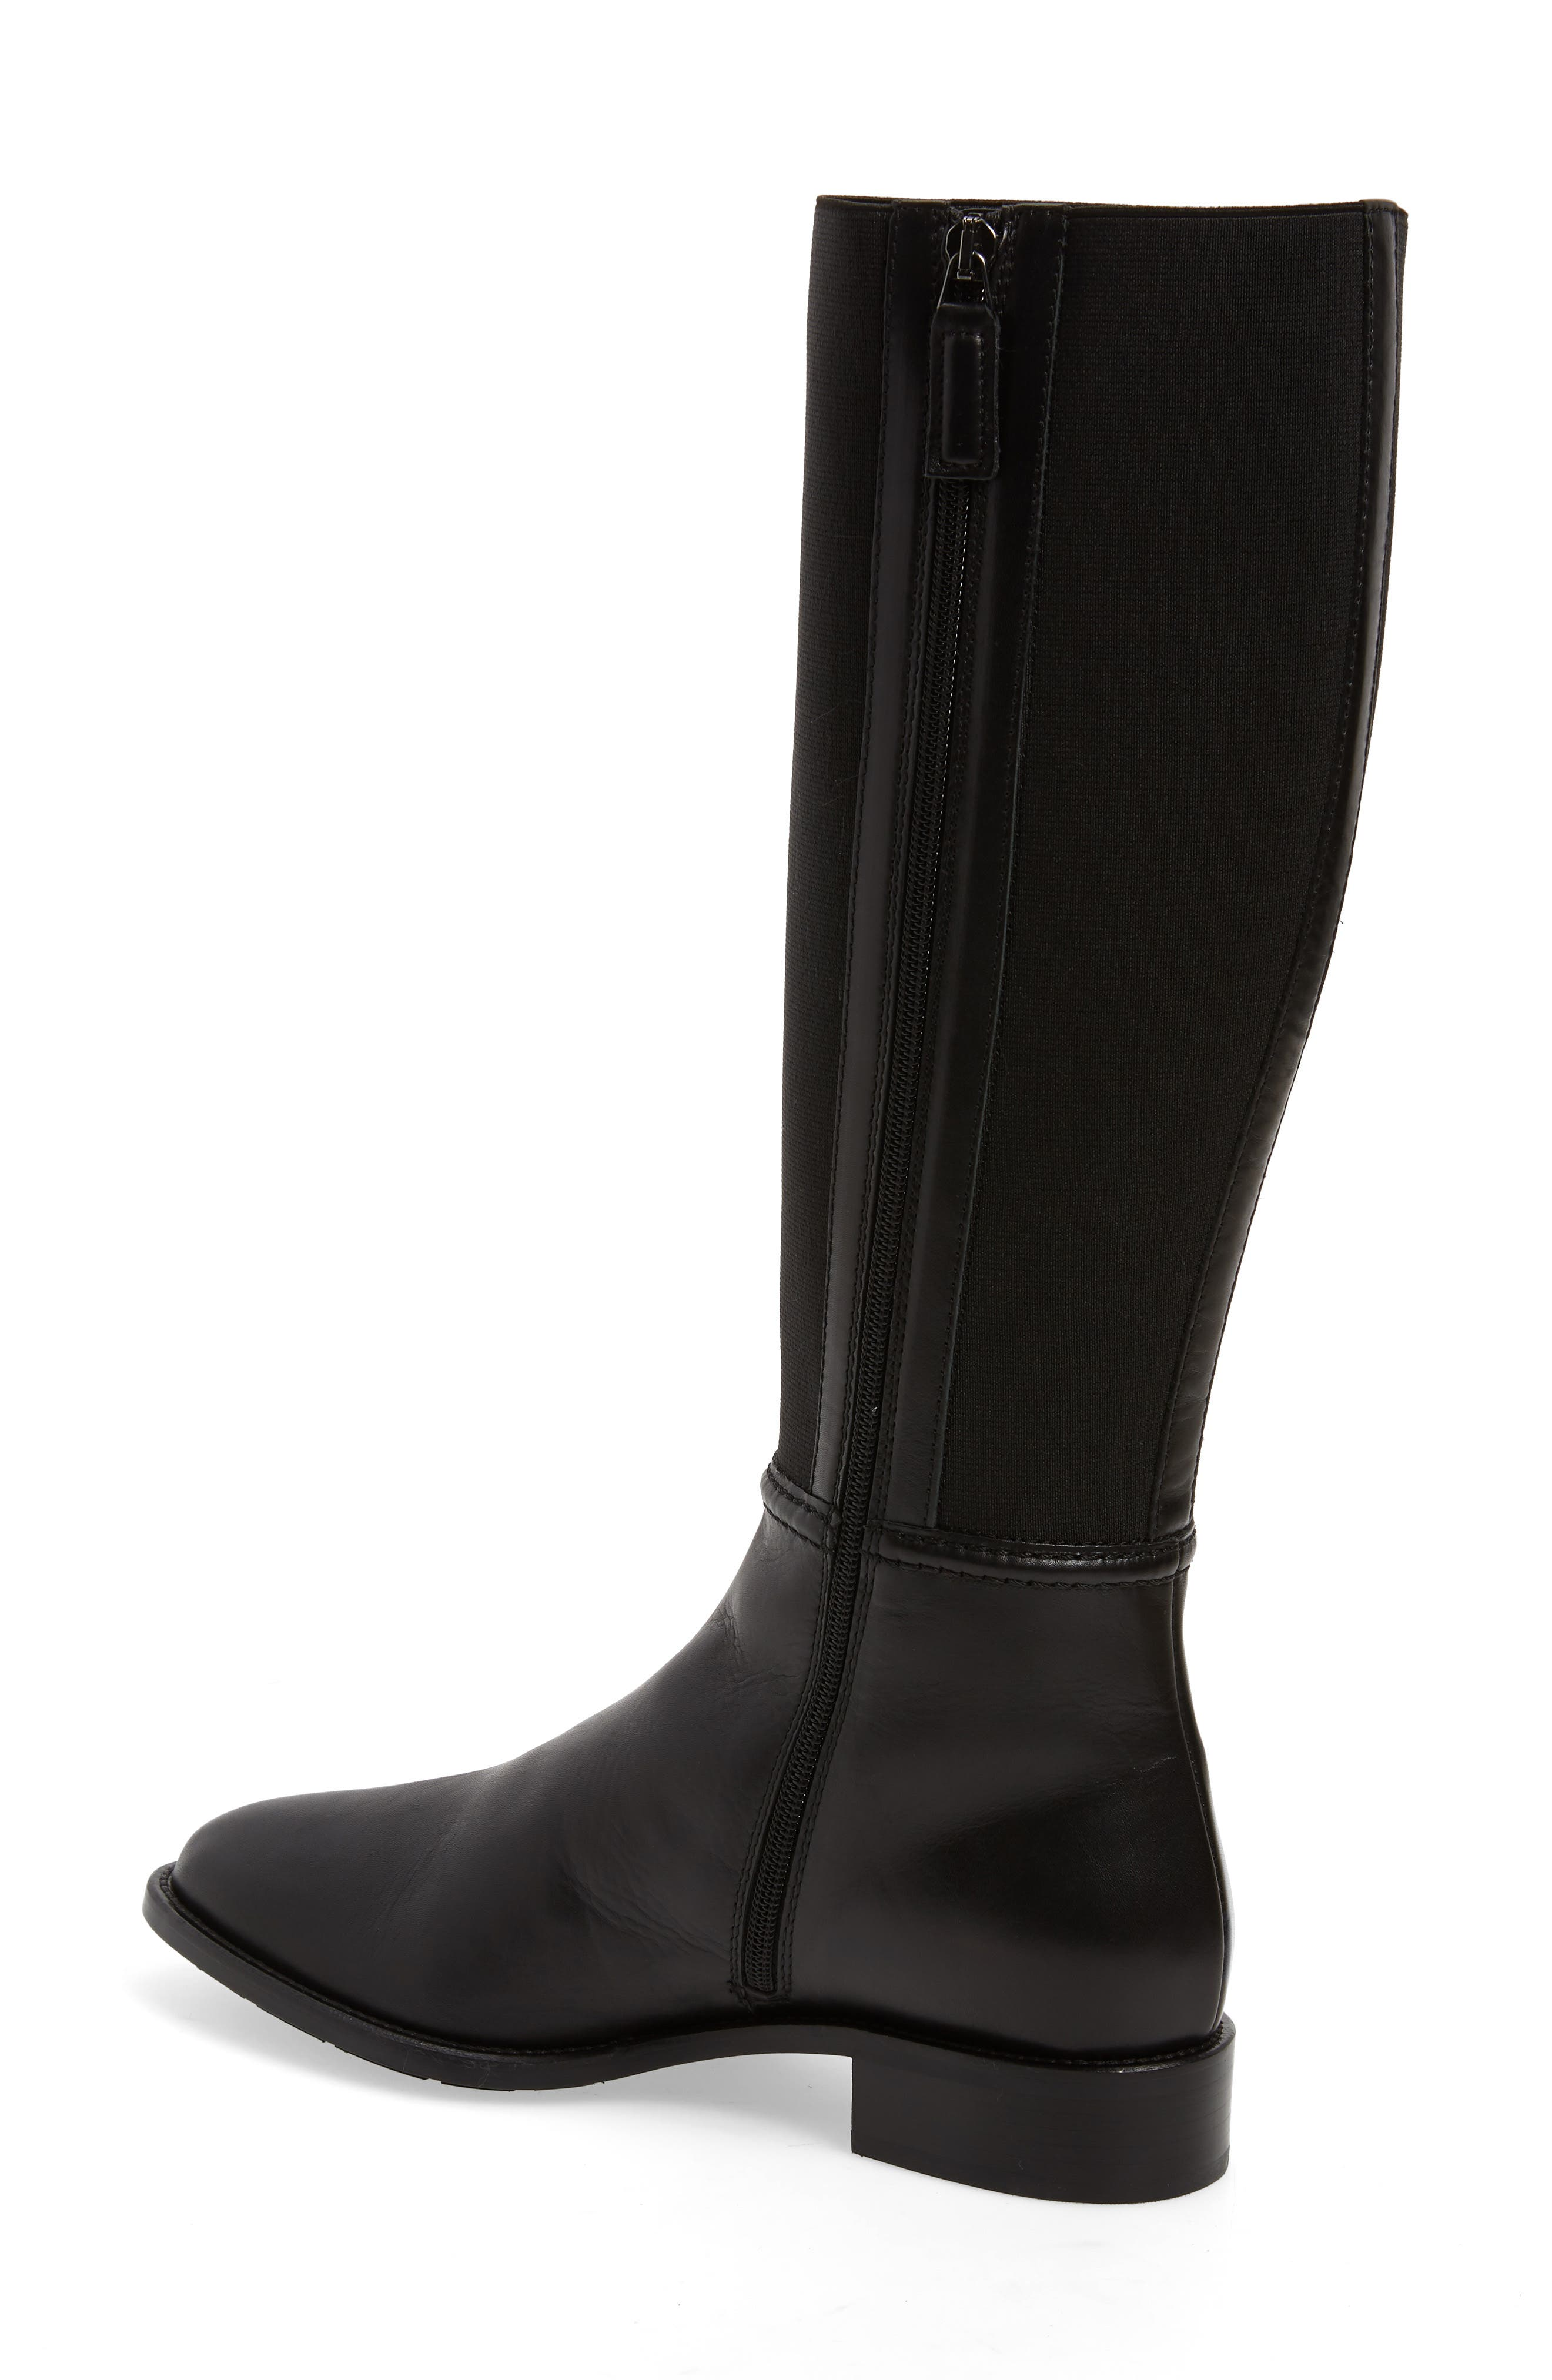 Nanina Water Resistant Riding Boot,                             Alternate thumbnail 2, color,                             BLACK